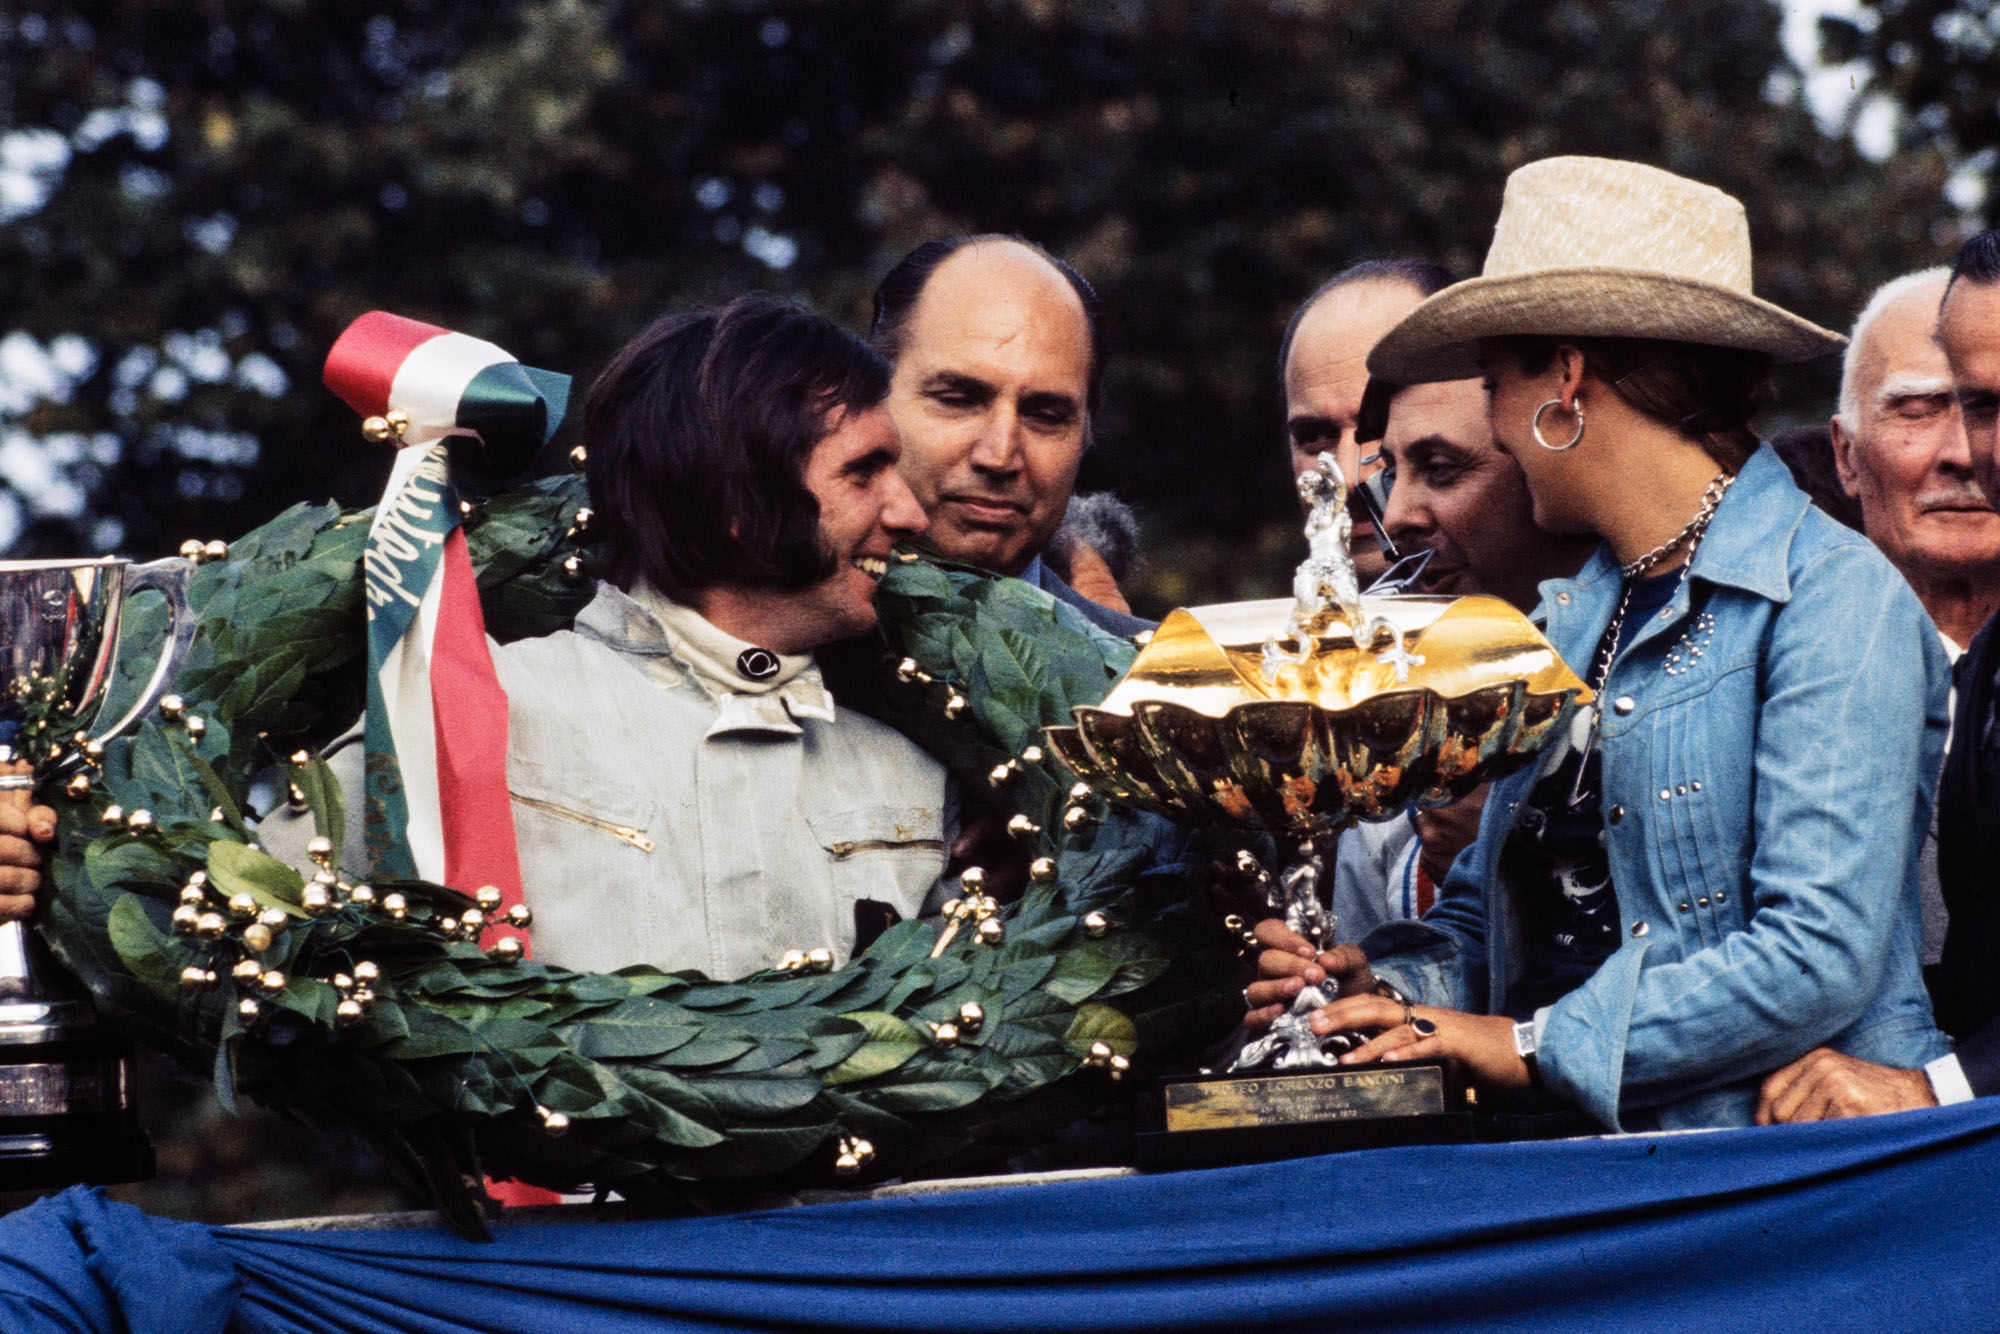 Emerson Fittipaldi receives the winner's trophy on the podium at the 1972 Italian Grand Prix, Monza.